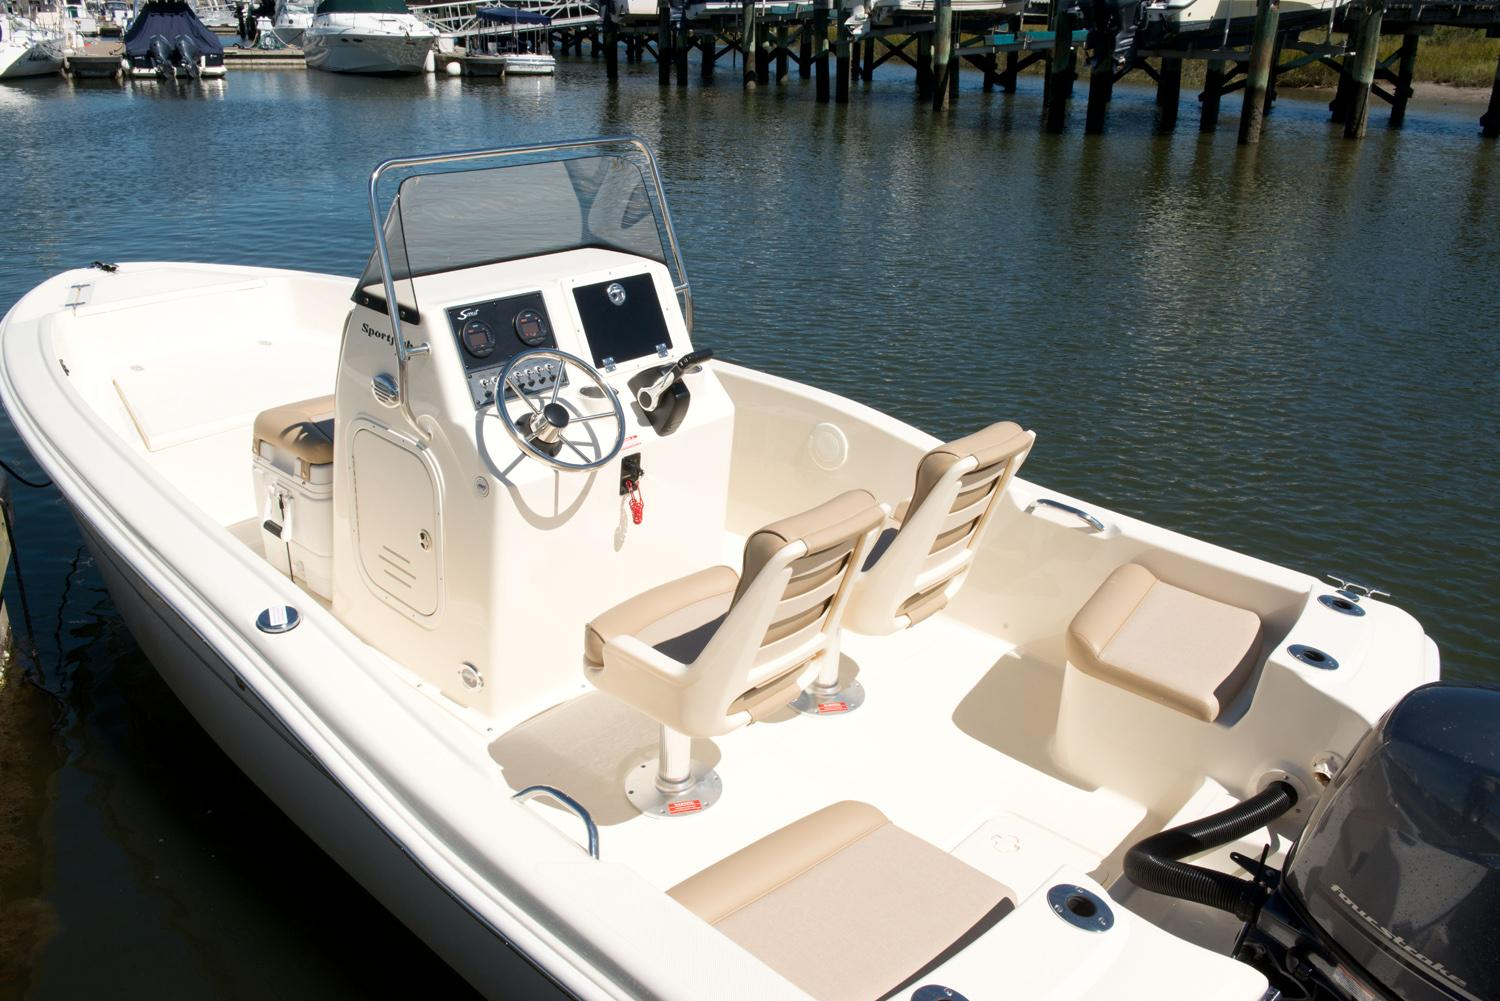 2020 Scout Boats 175 Sportfish in Bridgeport, New York - Photo 4